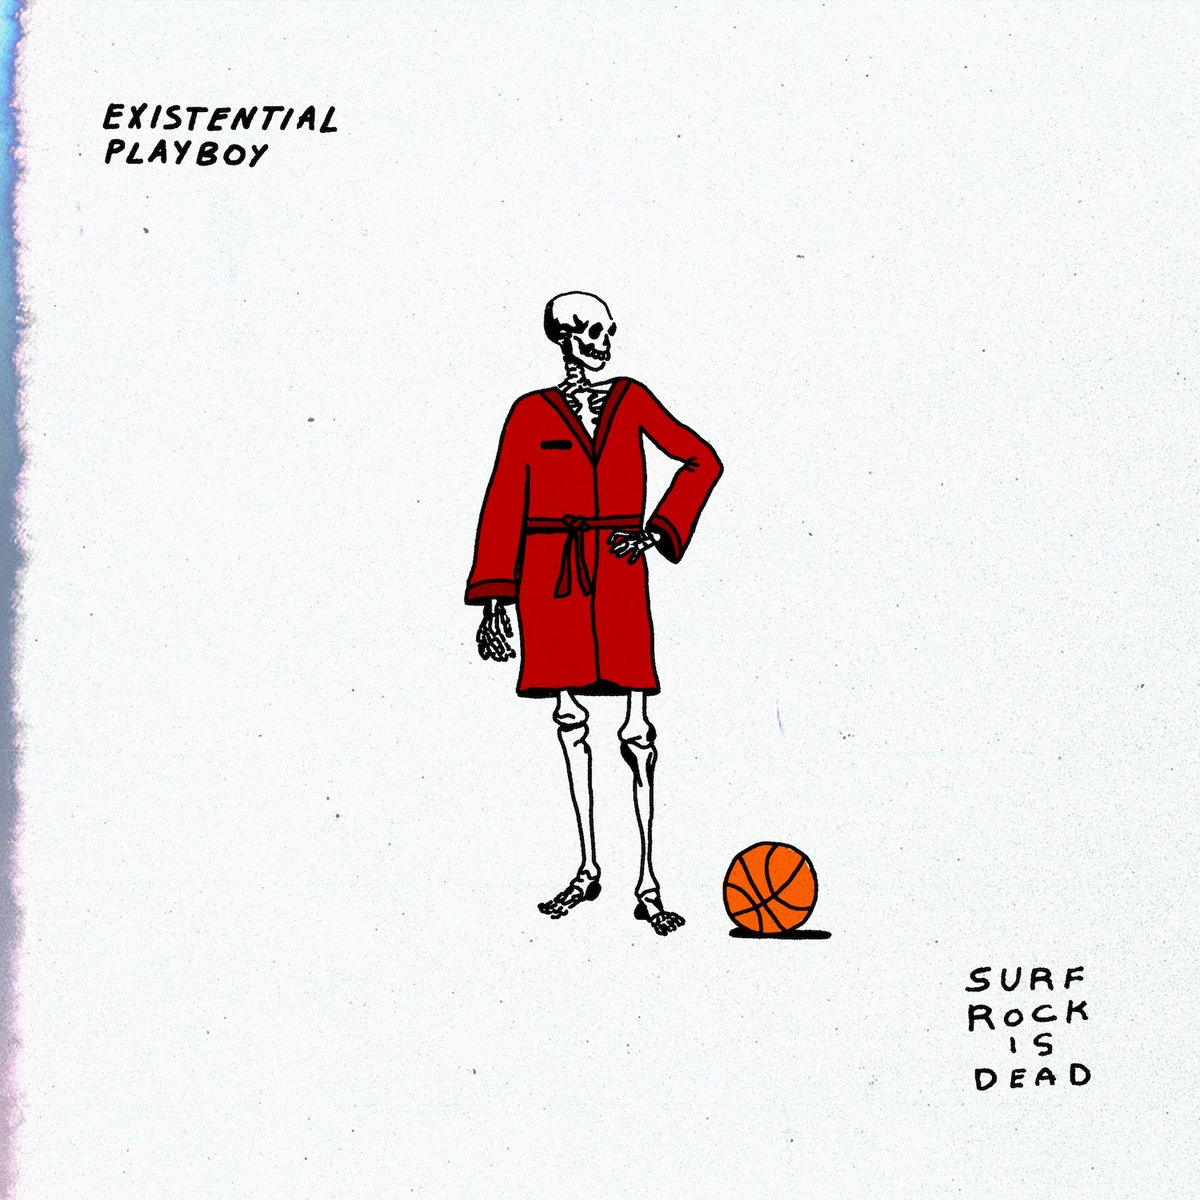 surf rock is dead existential playboy